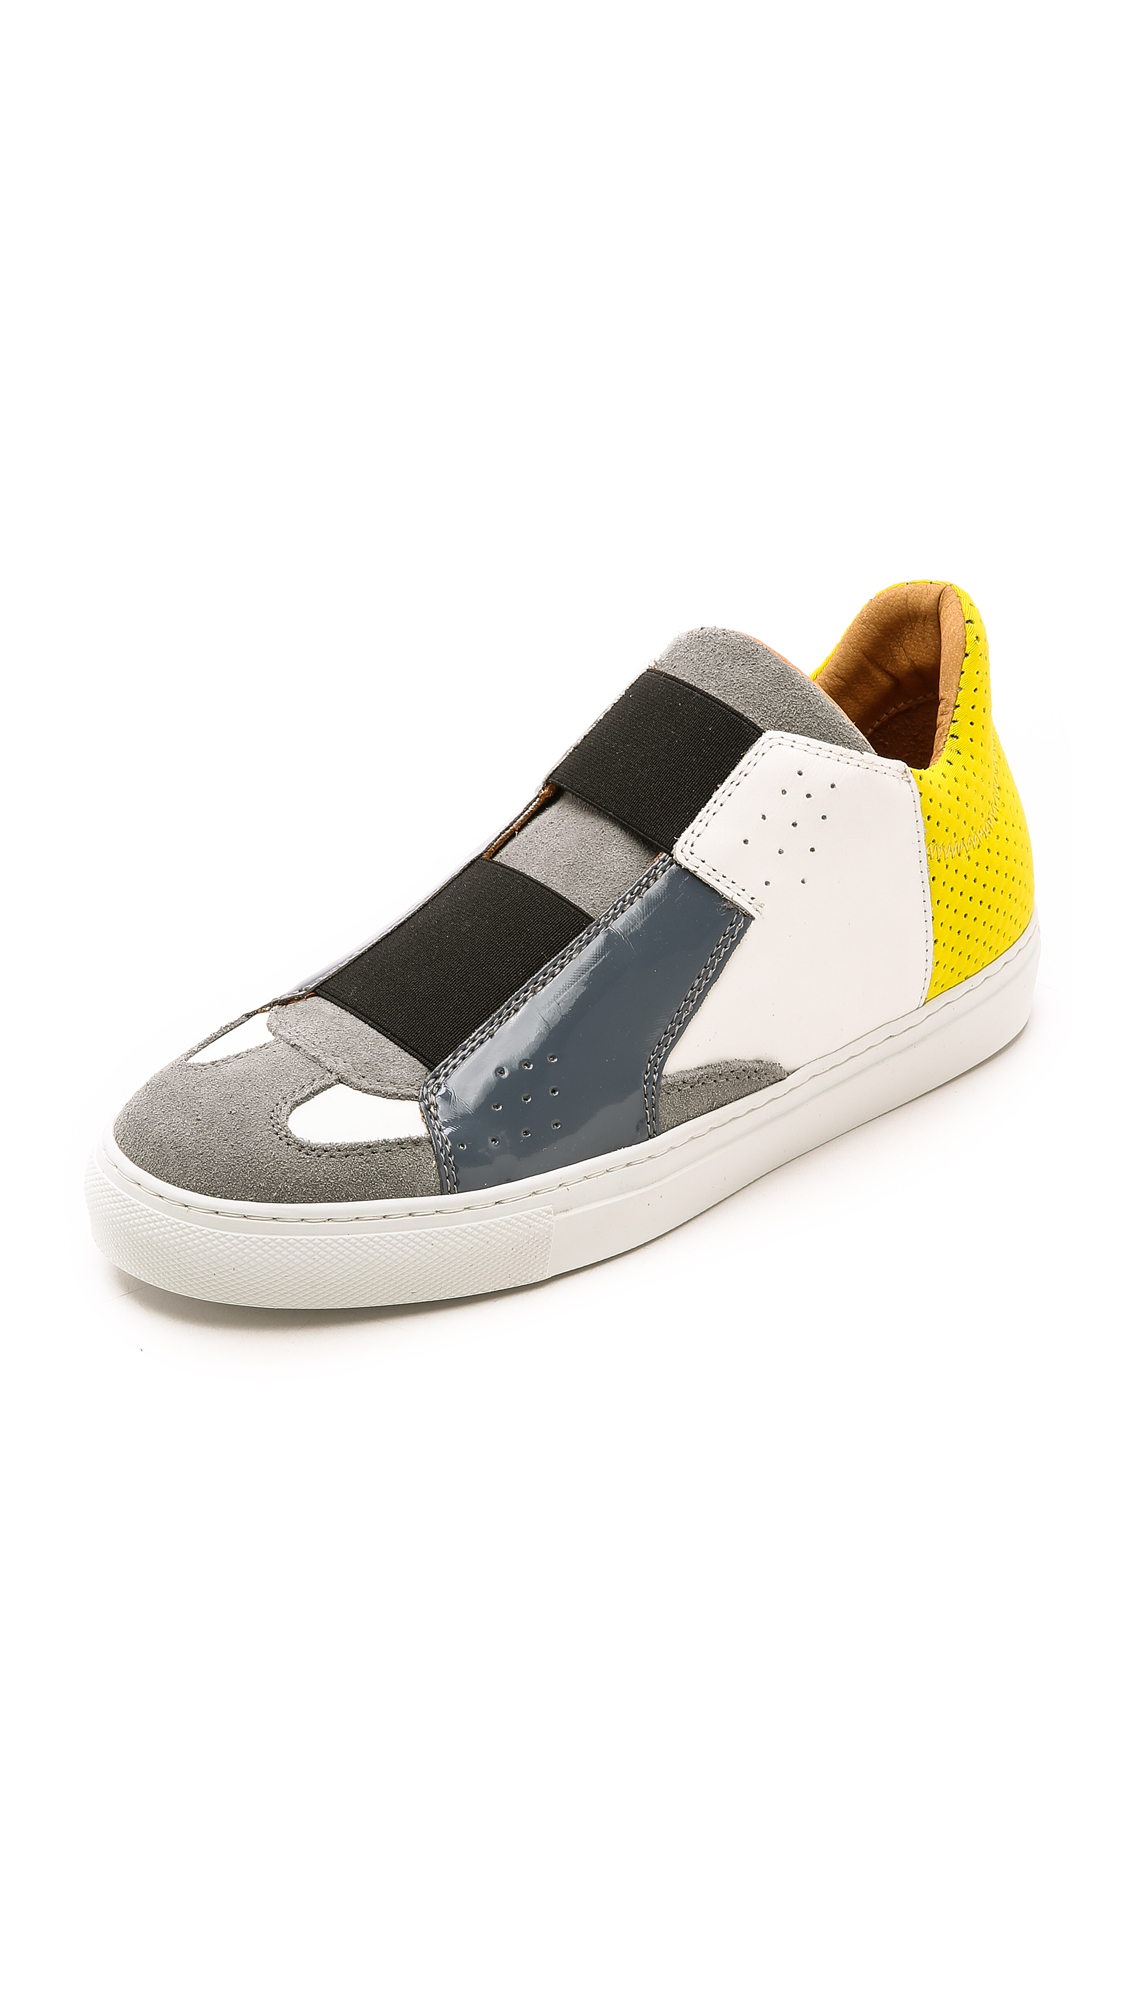 Find Great slip-on sneakers - Black Maison Martin Margiela Recommend For Sale CSUzMpENd2